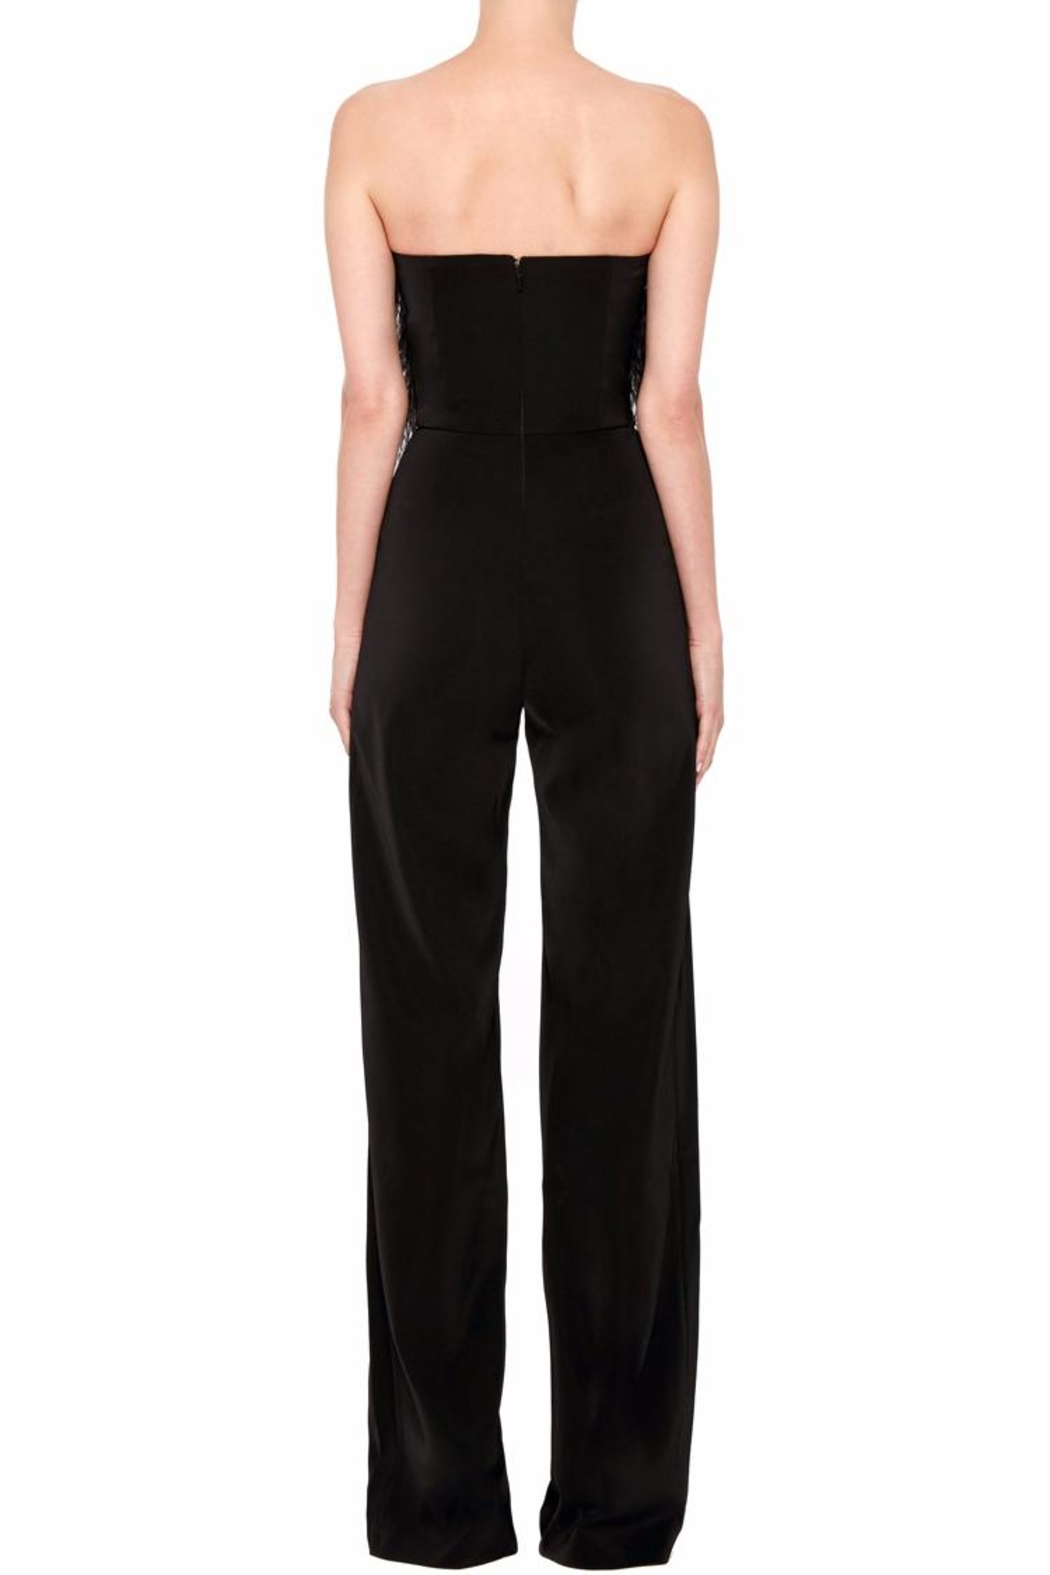 Saloni Strapless Feather Jumpsuit - Front Full Image